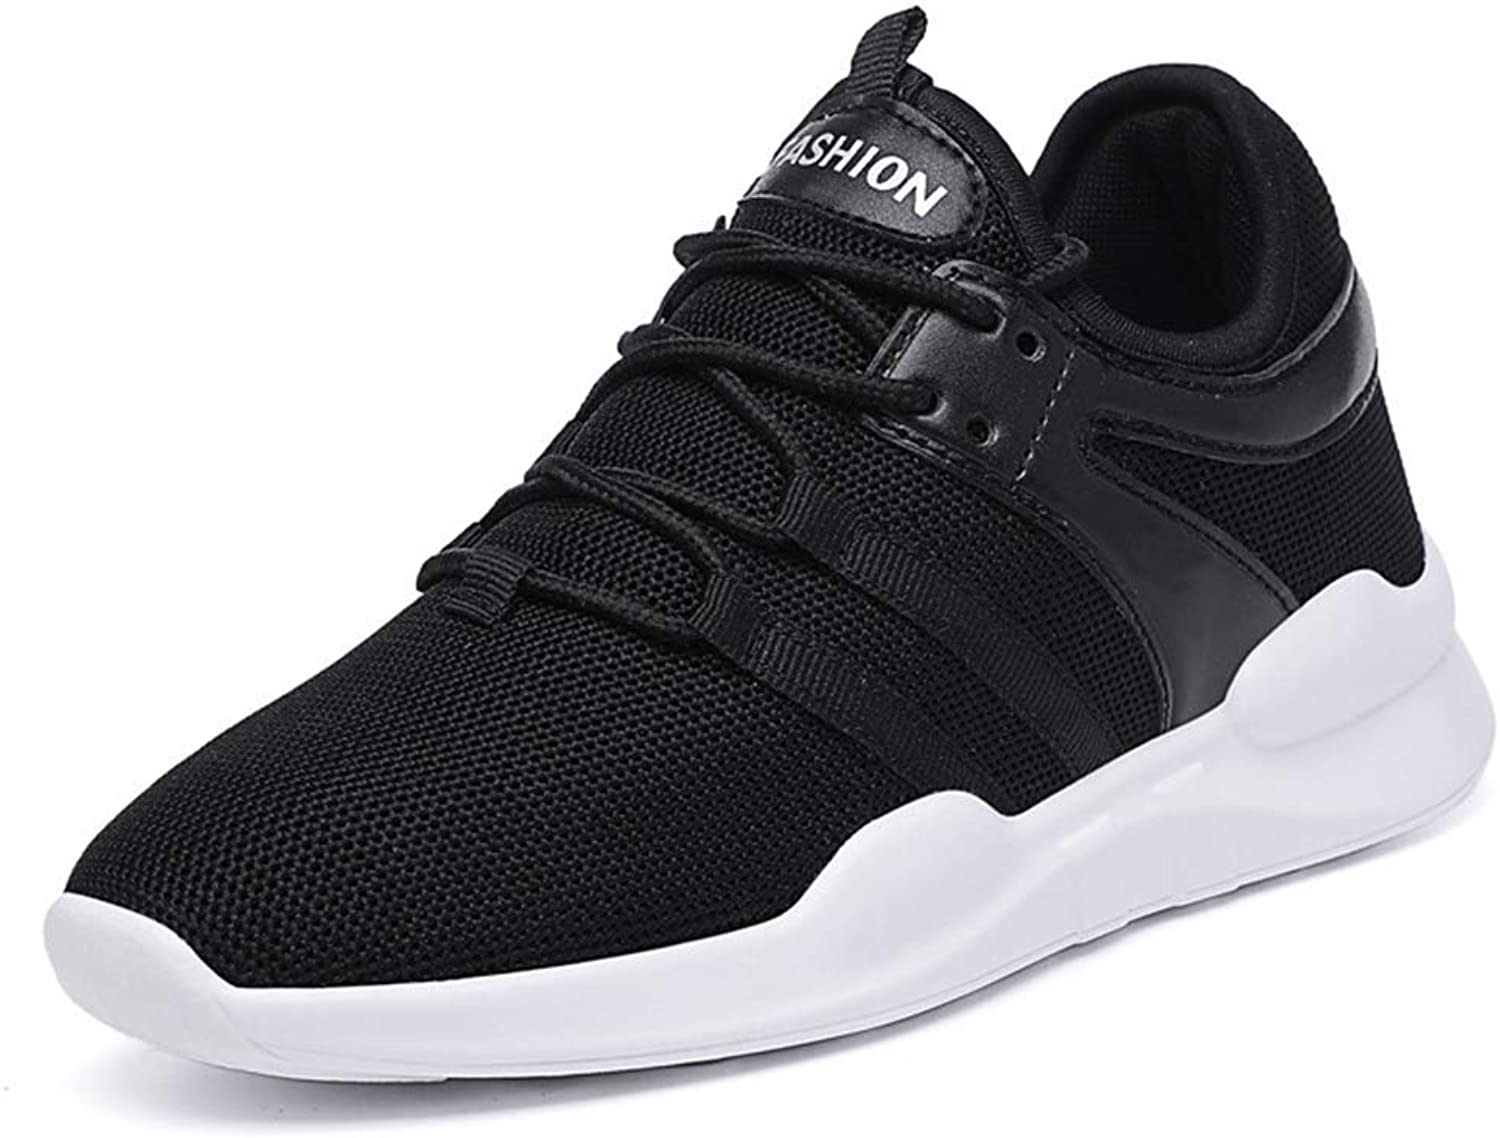 Elsa Wilcox Women Breathable Walking Running Athletic Tennis Workout Comfortable Outdoor Travel Sport Walking Sneakers Running shoes